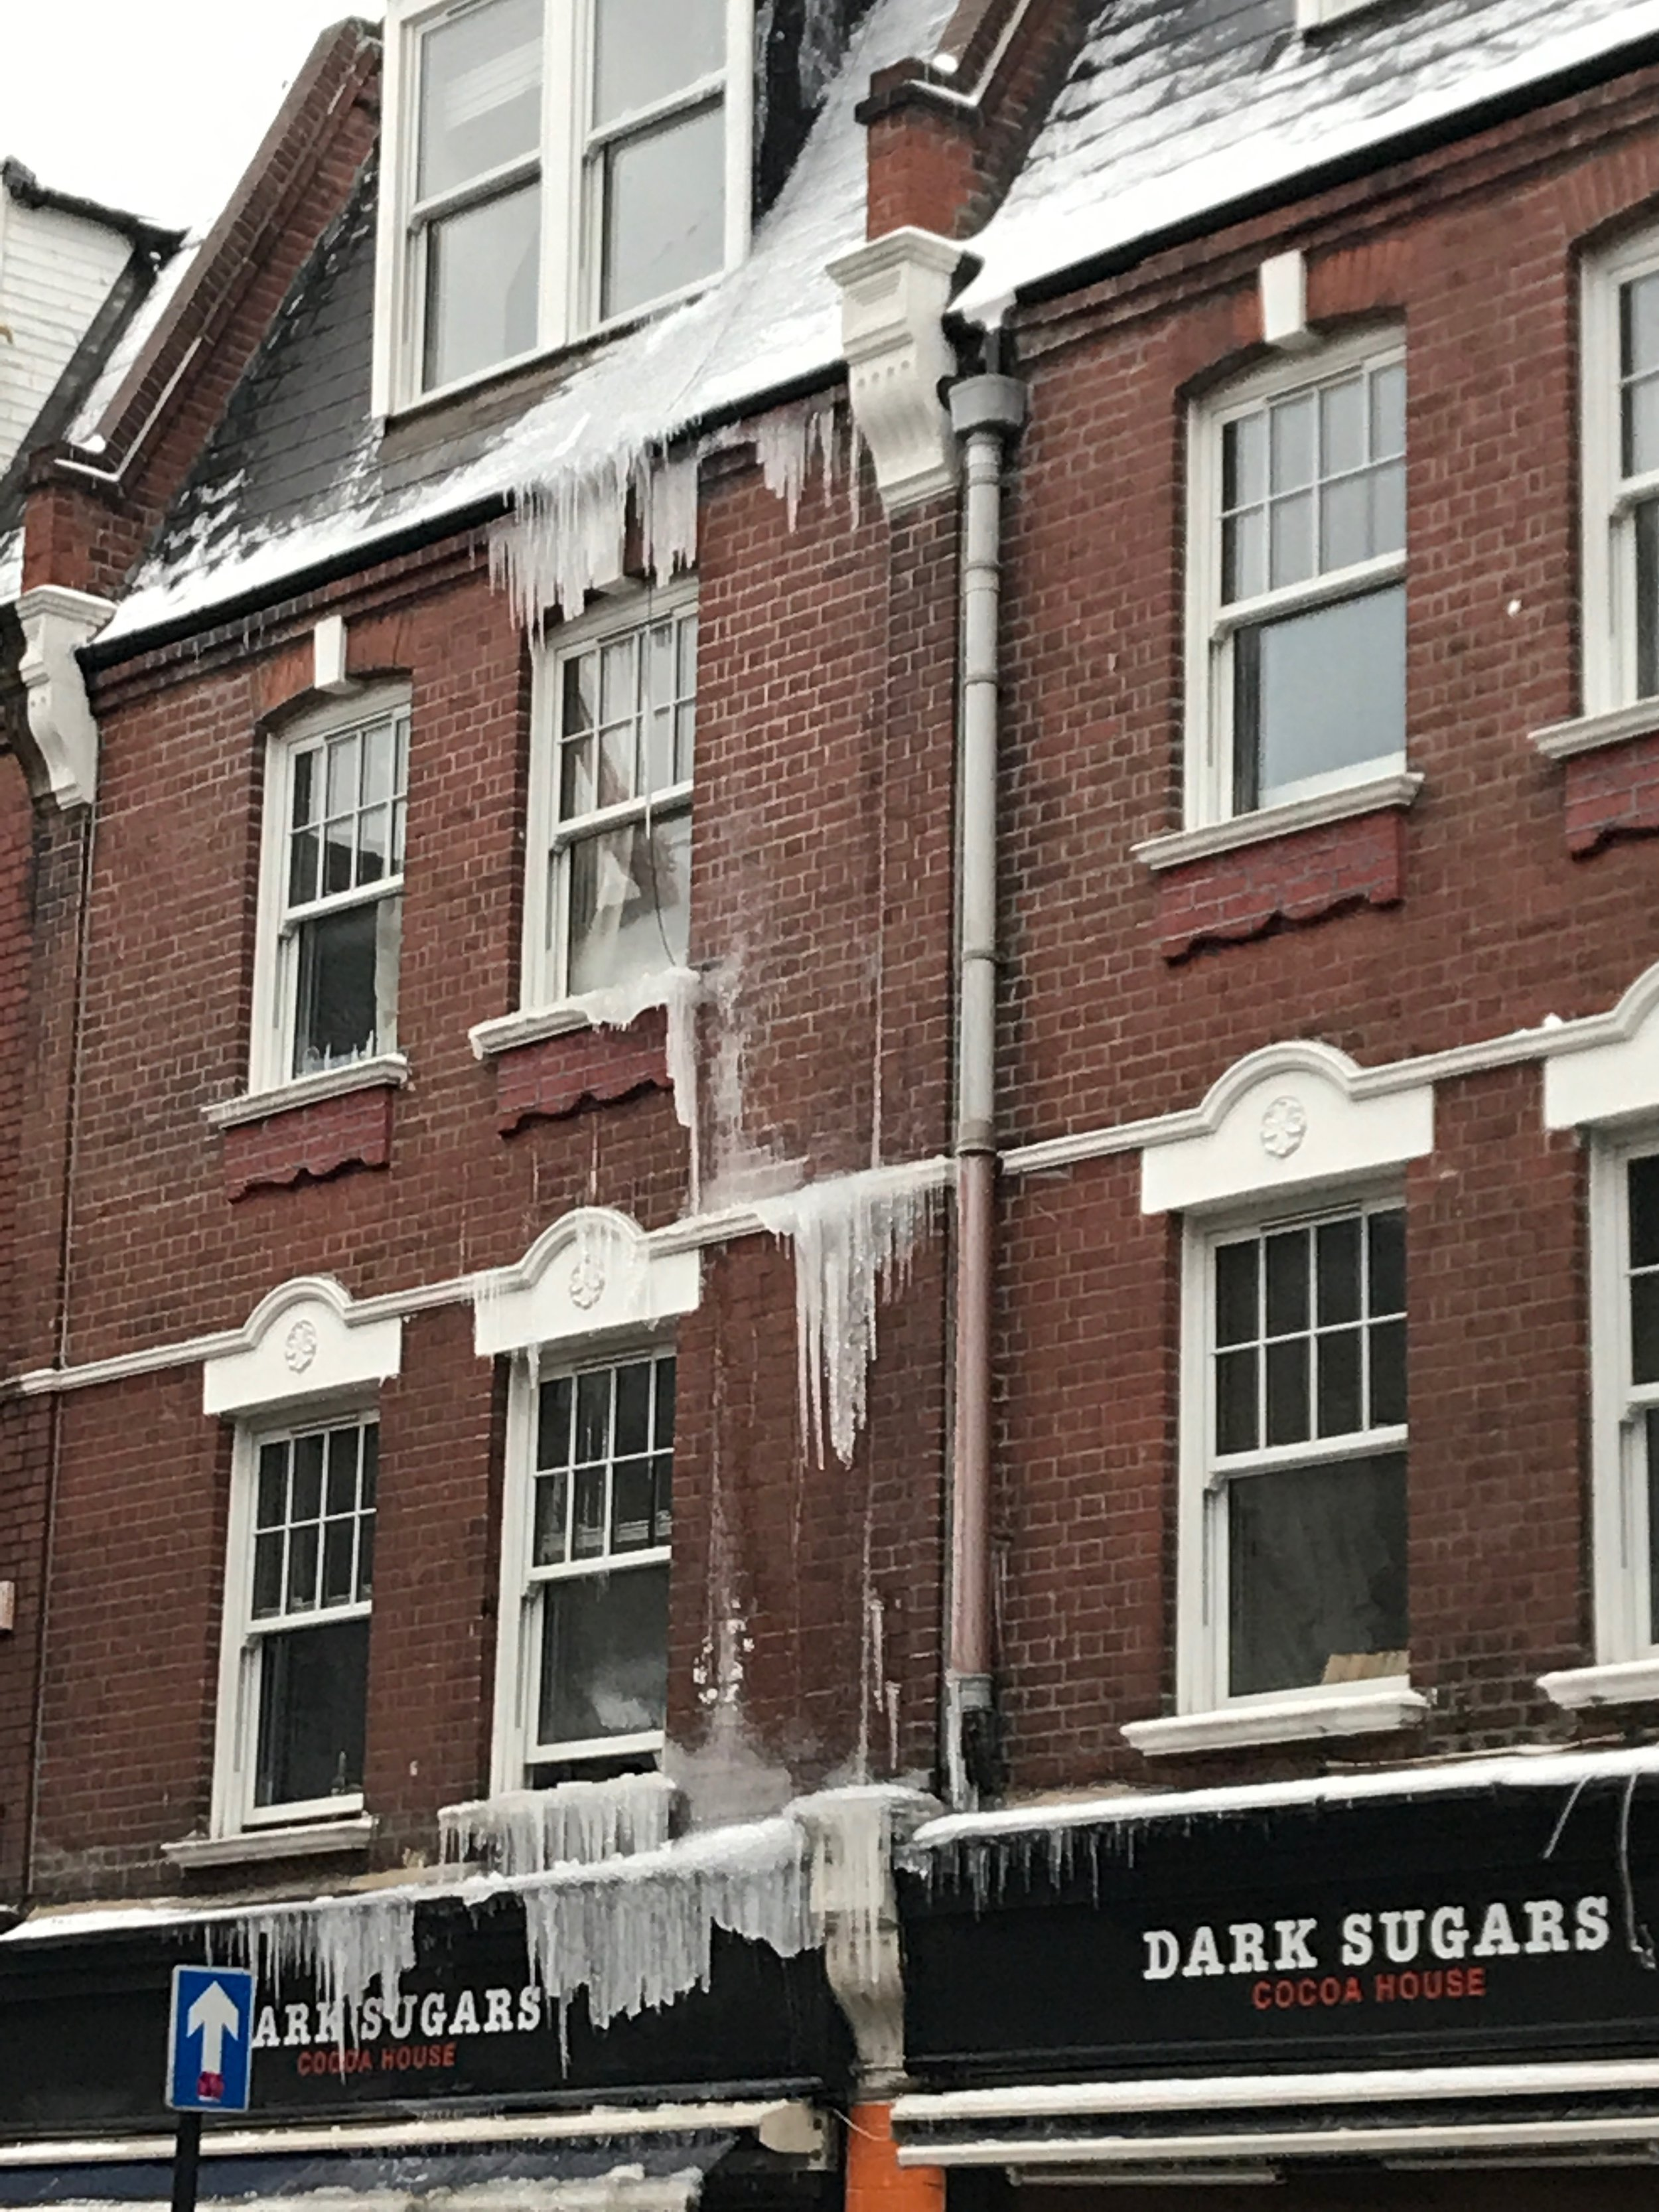 Icicles on a house in Brick Lane